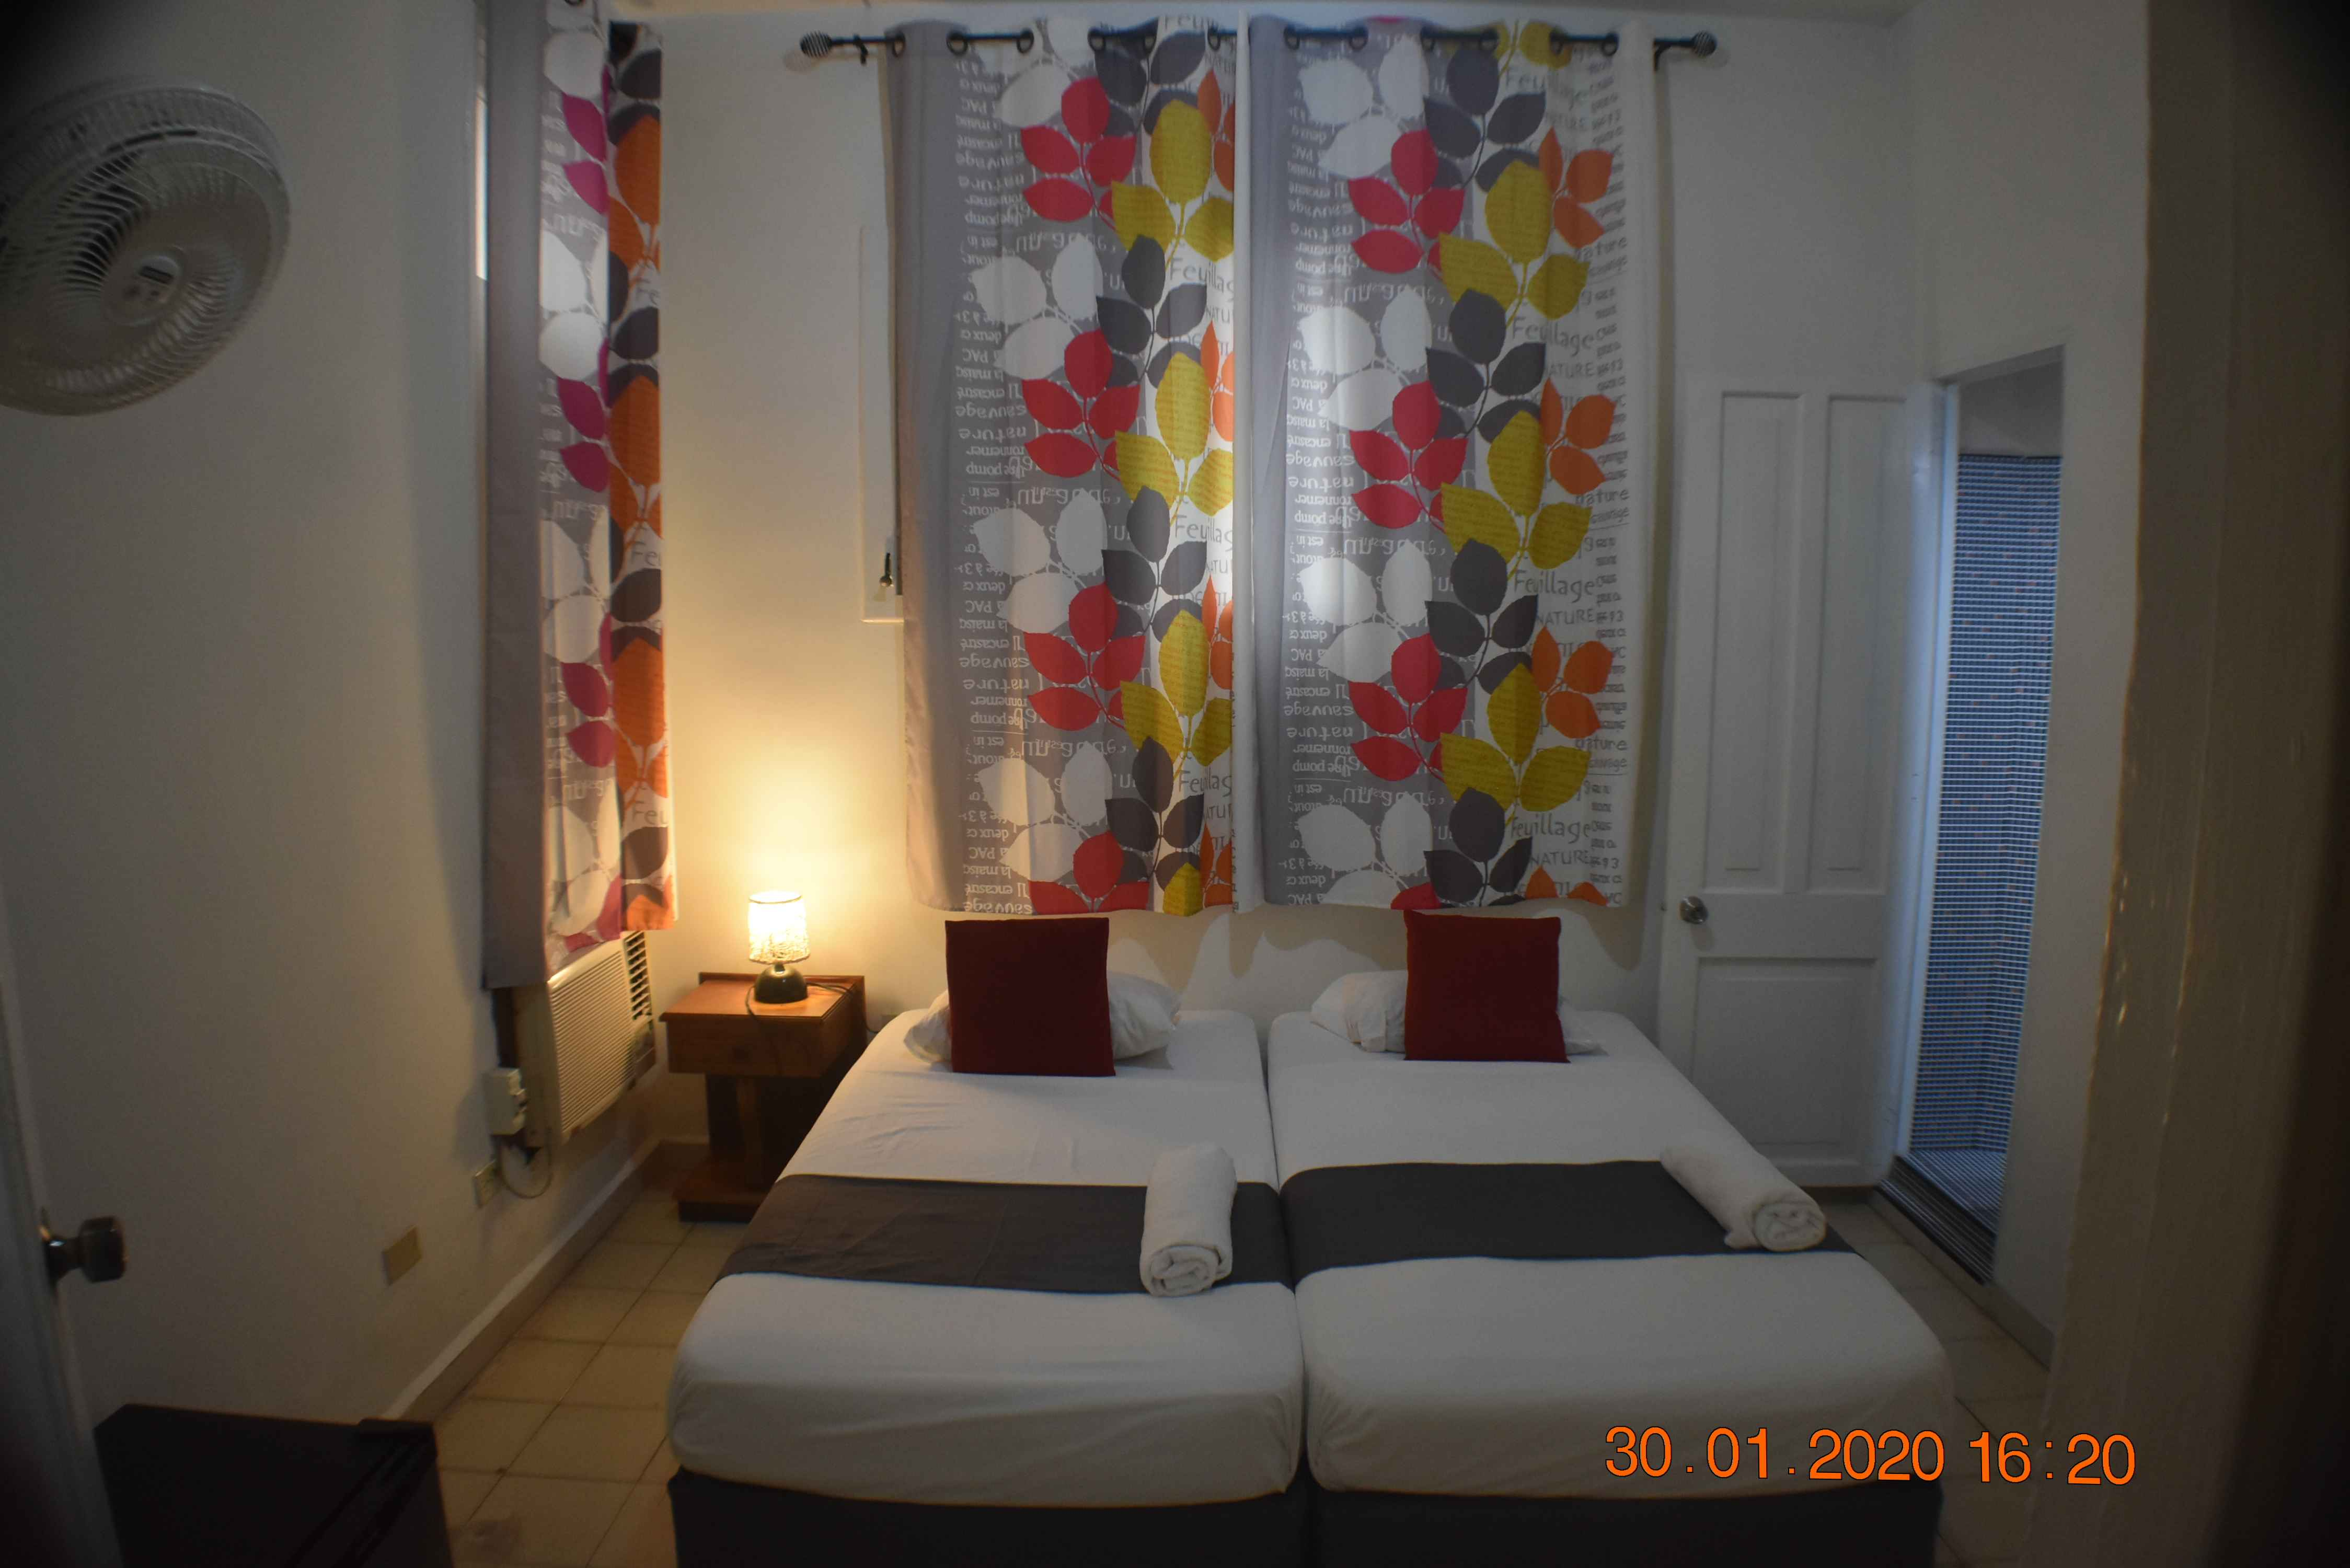 HAV205 – Room 1 Double room with private bathroom